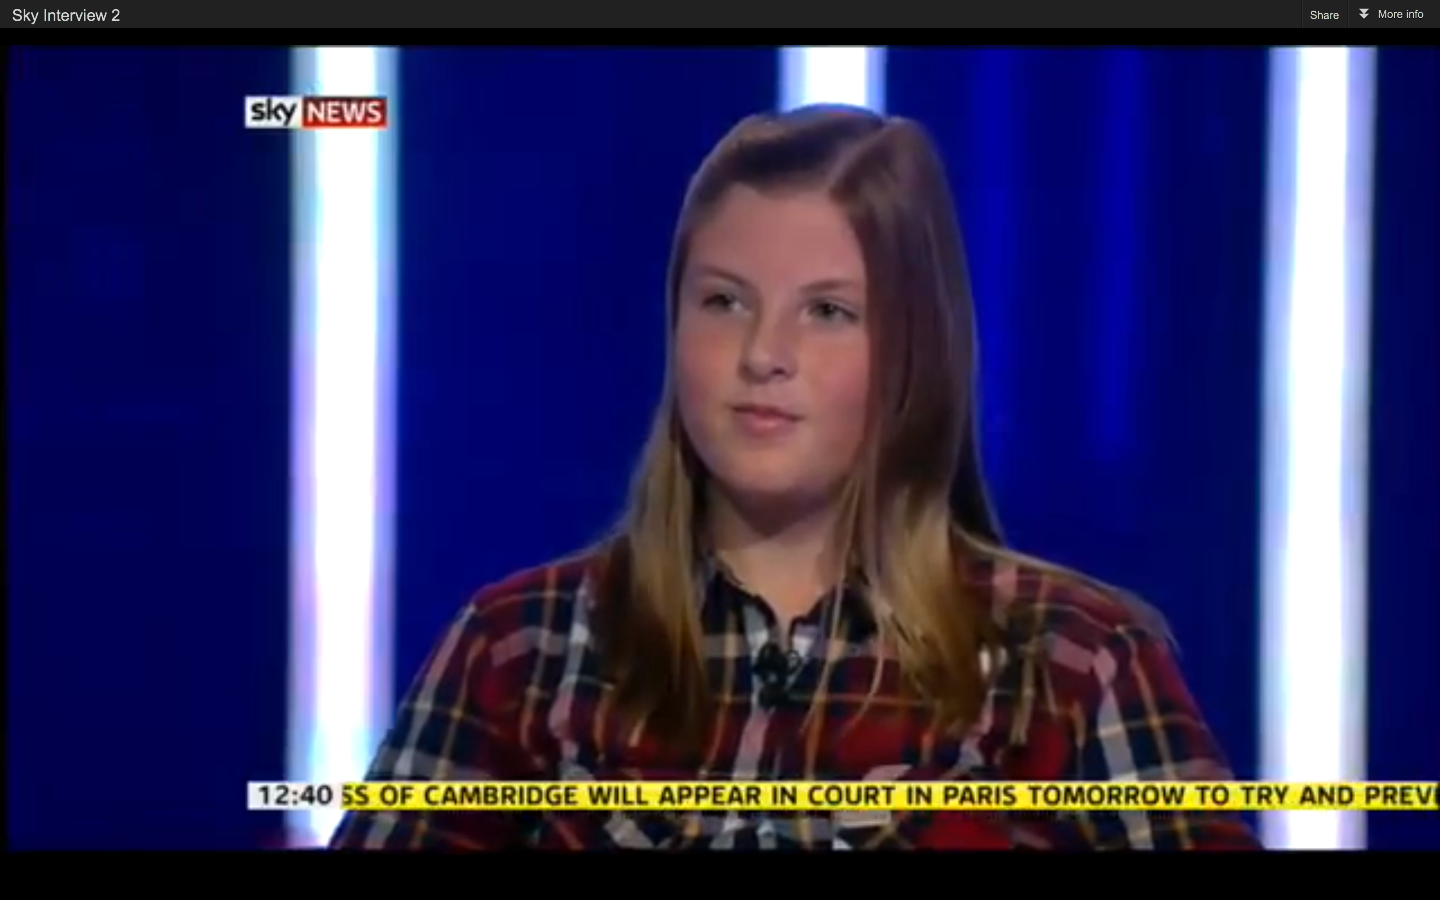 Check me out on Sky News!